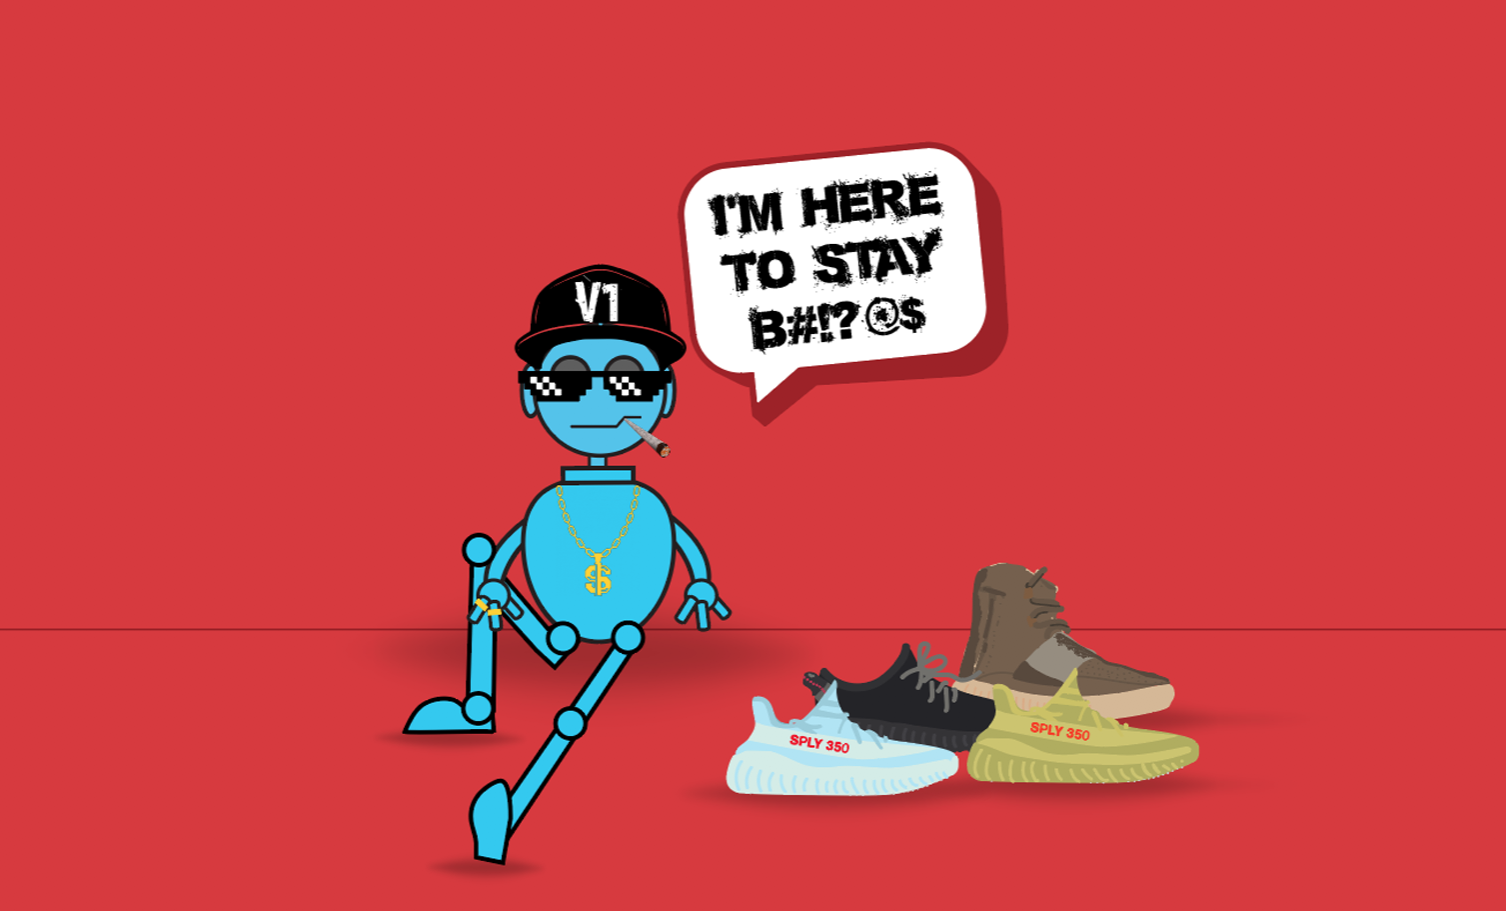 f9b7edcc6e8 Everyone has been asking and rumors were going left and right about a new sneaker  bot with A LOT of misinformation.